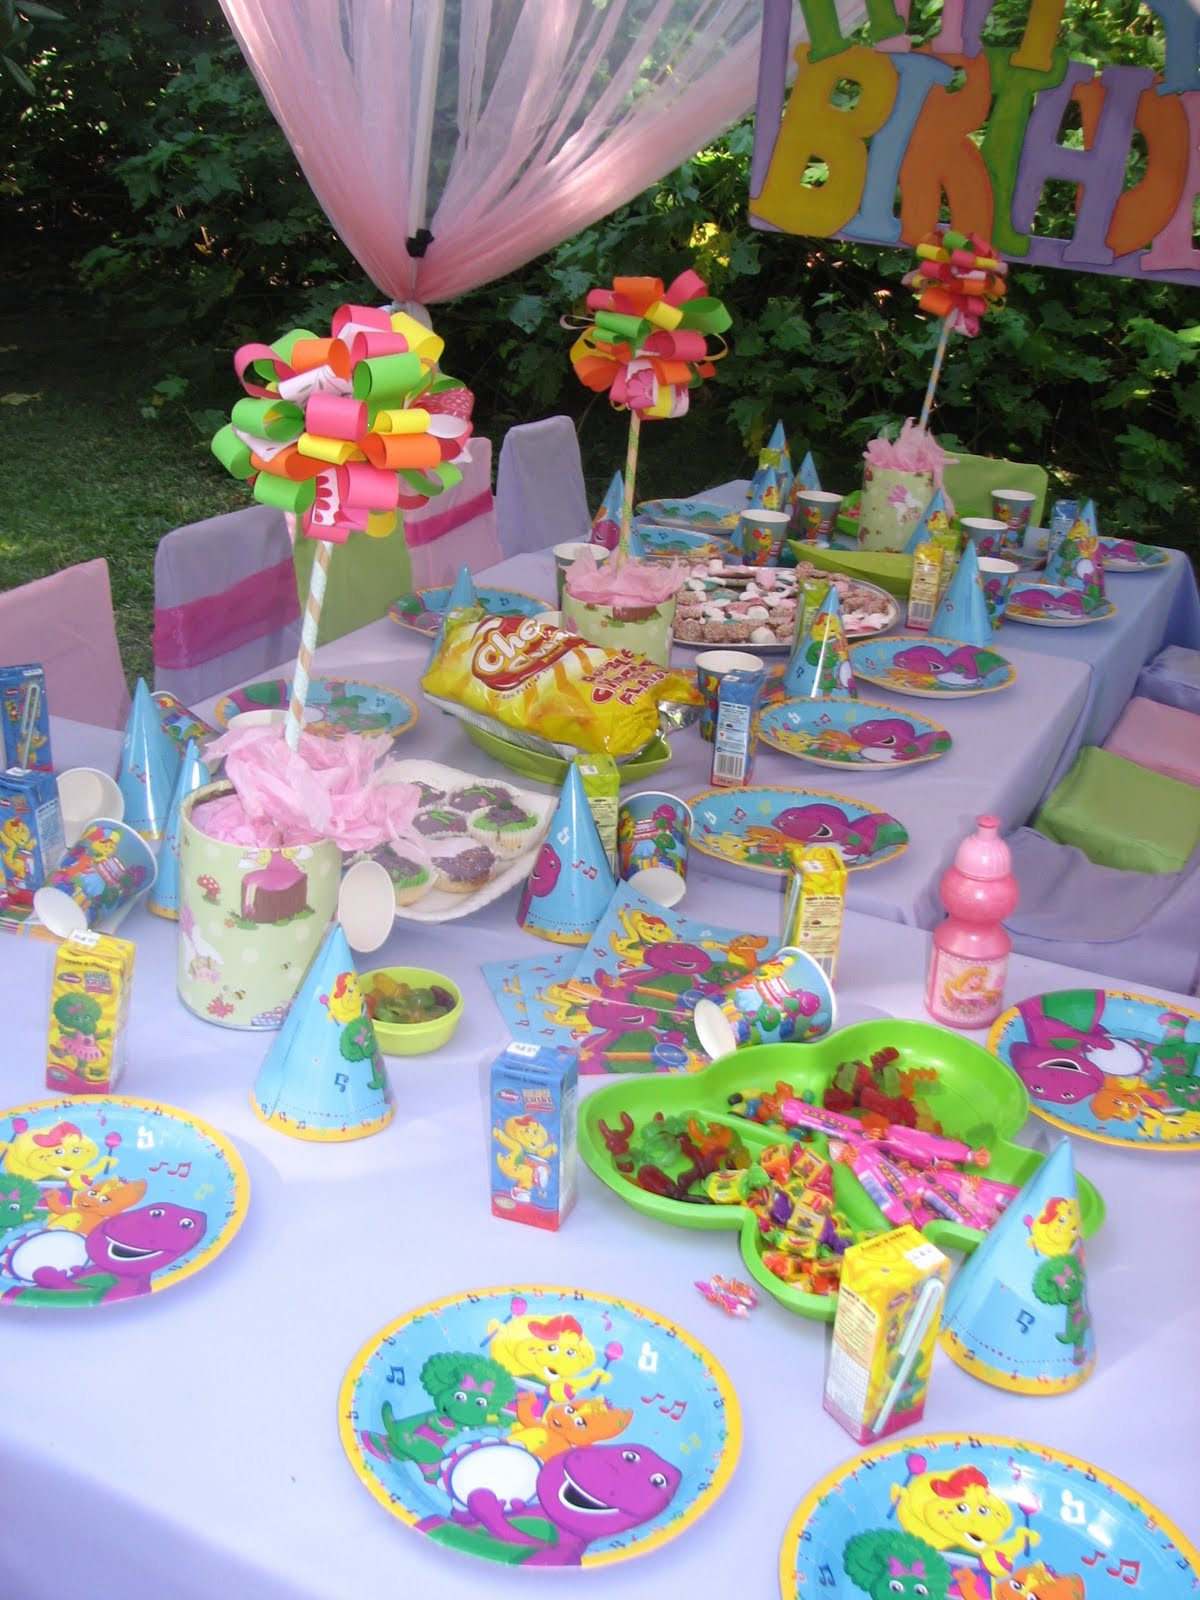 Barney Birthday Party Decorations  GLITTERING GATHERINGS BARNEY PARTY